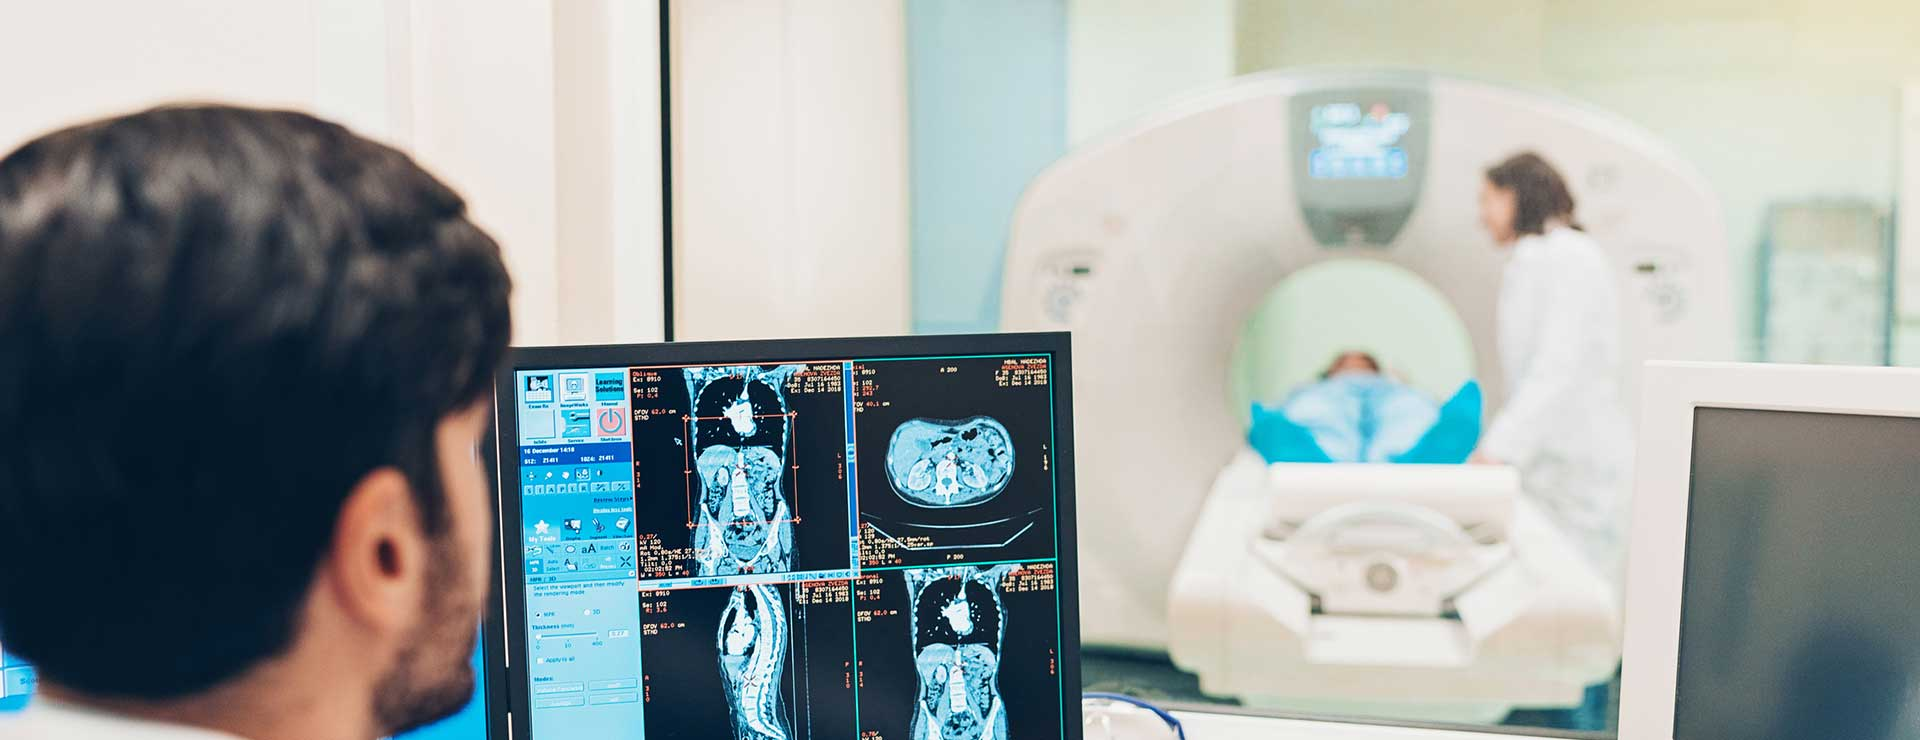 Doctors using a MRI machine to scan patient